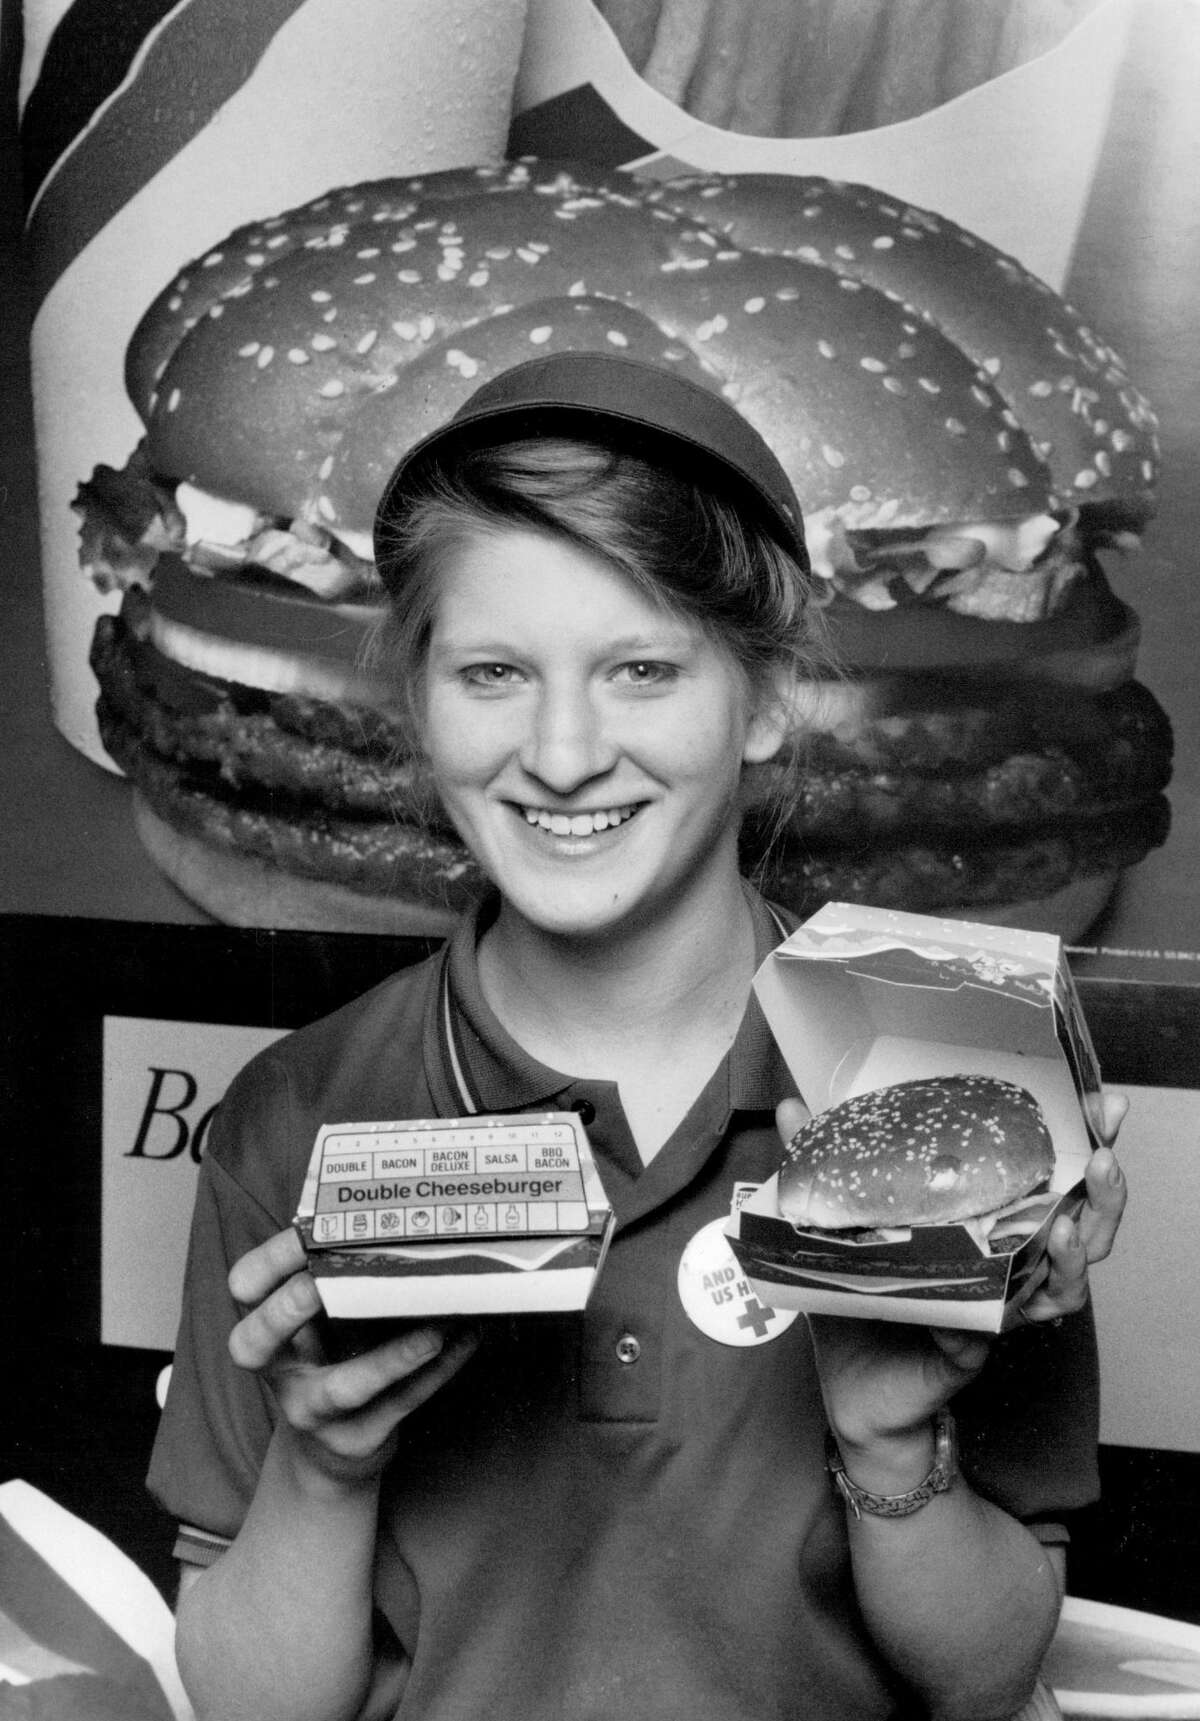 There was no relation to Burger King, which first opened in Florida in 1953, or Burger King's Whopper hamburger, which first debuted in 1957.